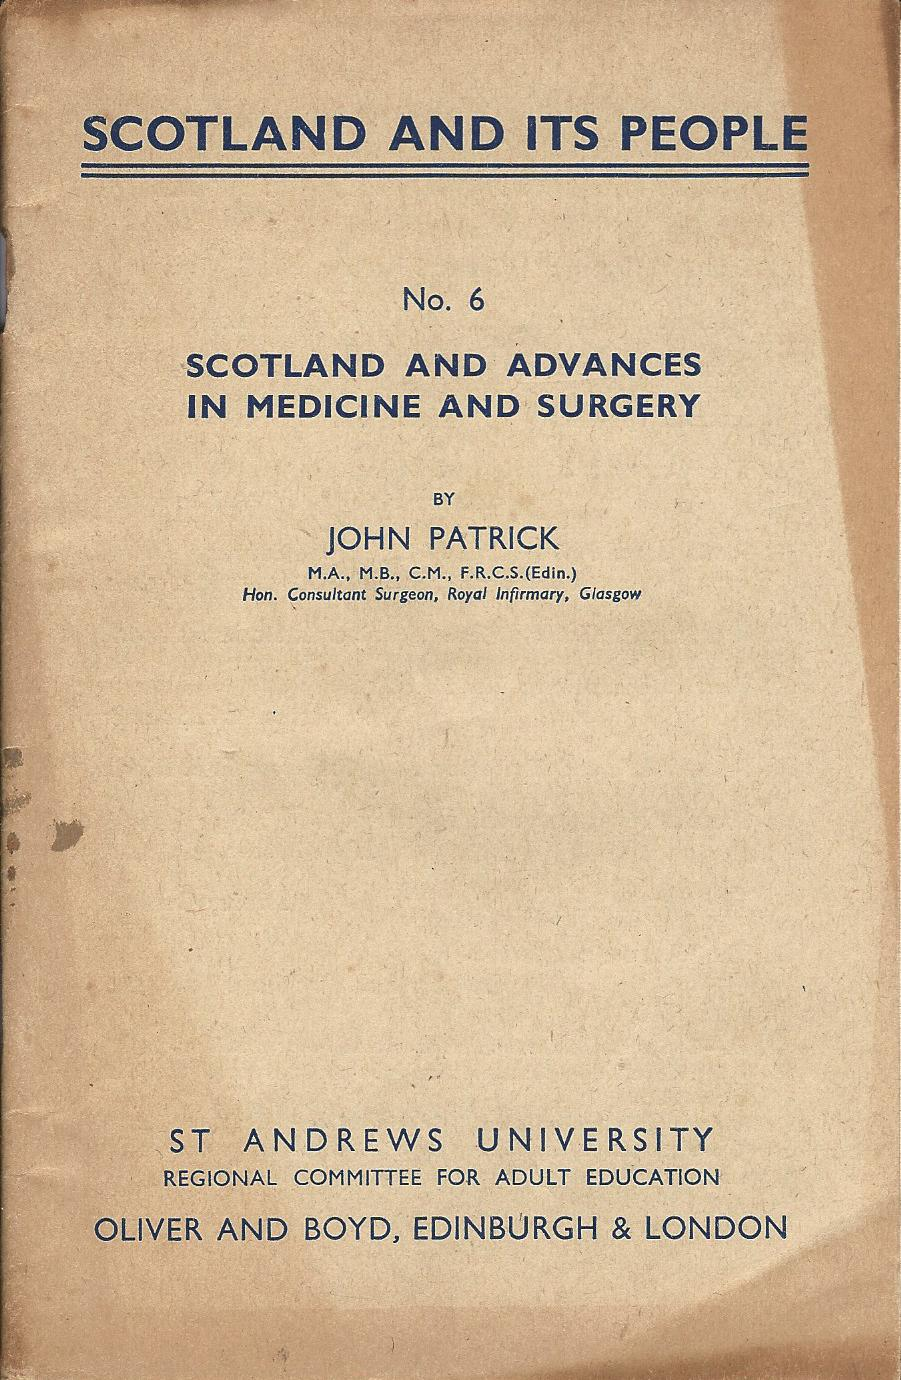 Image for Scotland and its people No 6: Scotland and Advances in Medicine and Surgery.